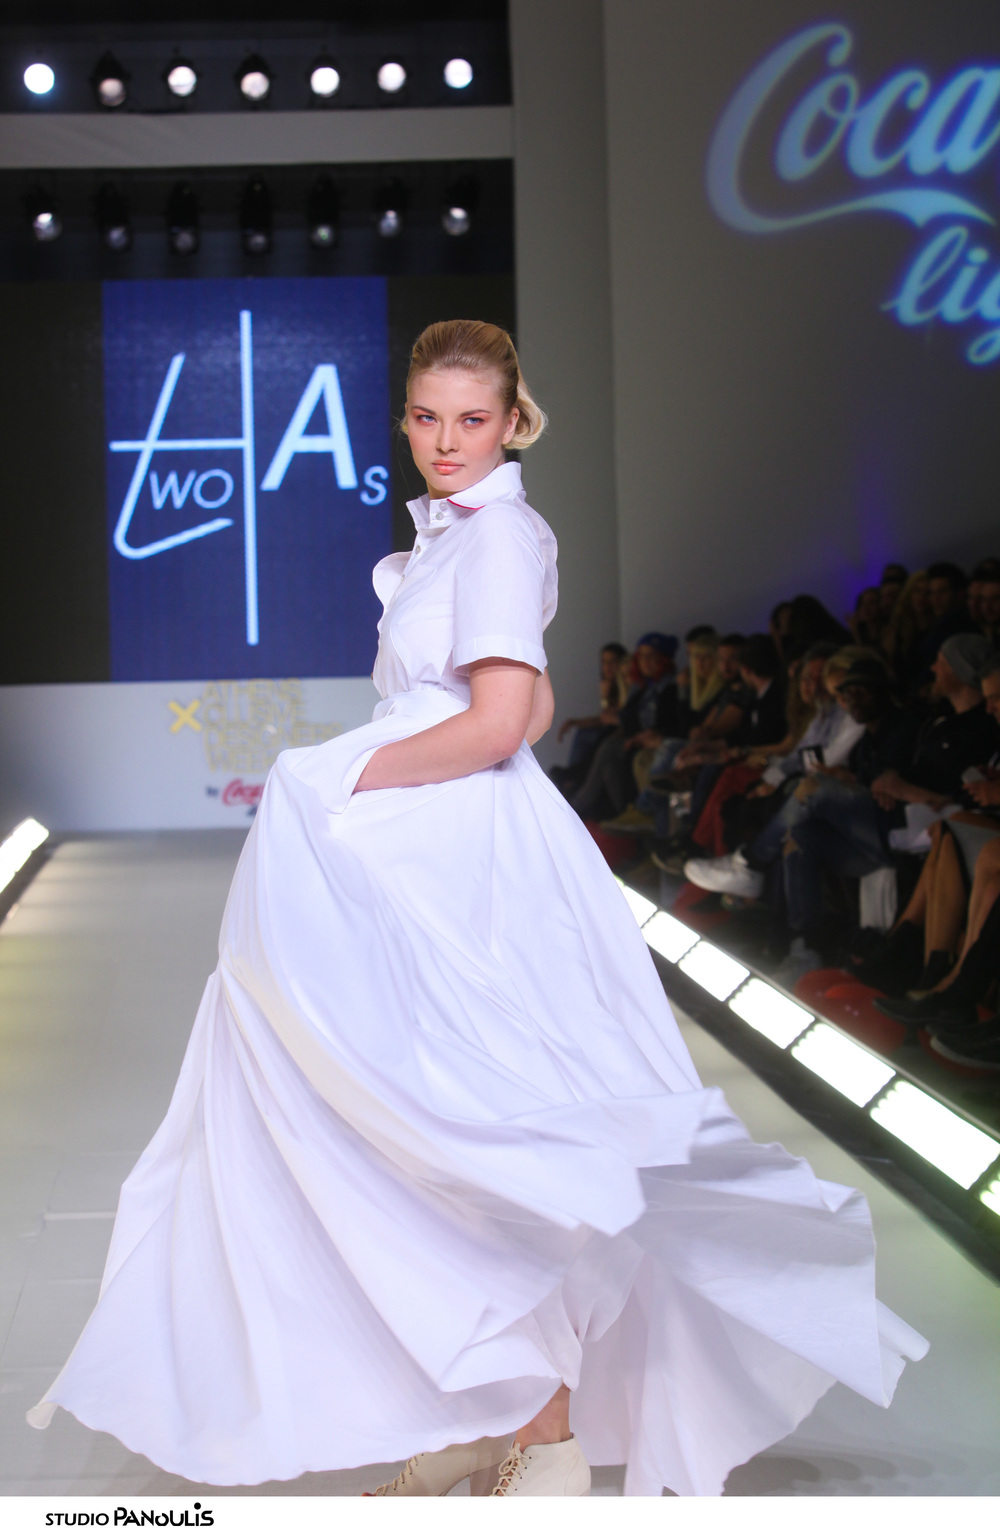 TWO A'S/Catwalk